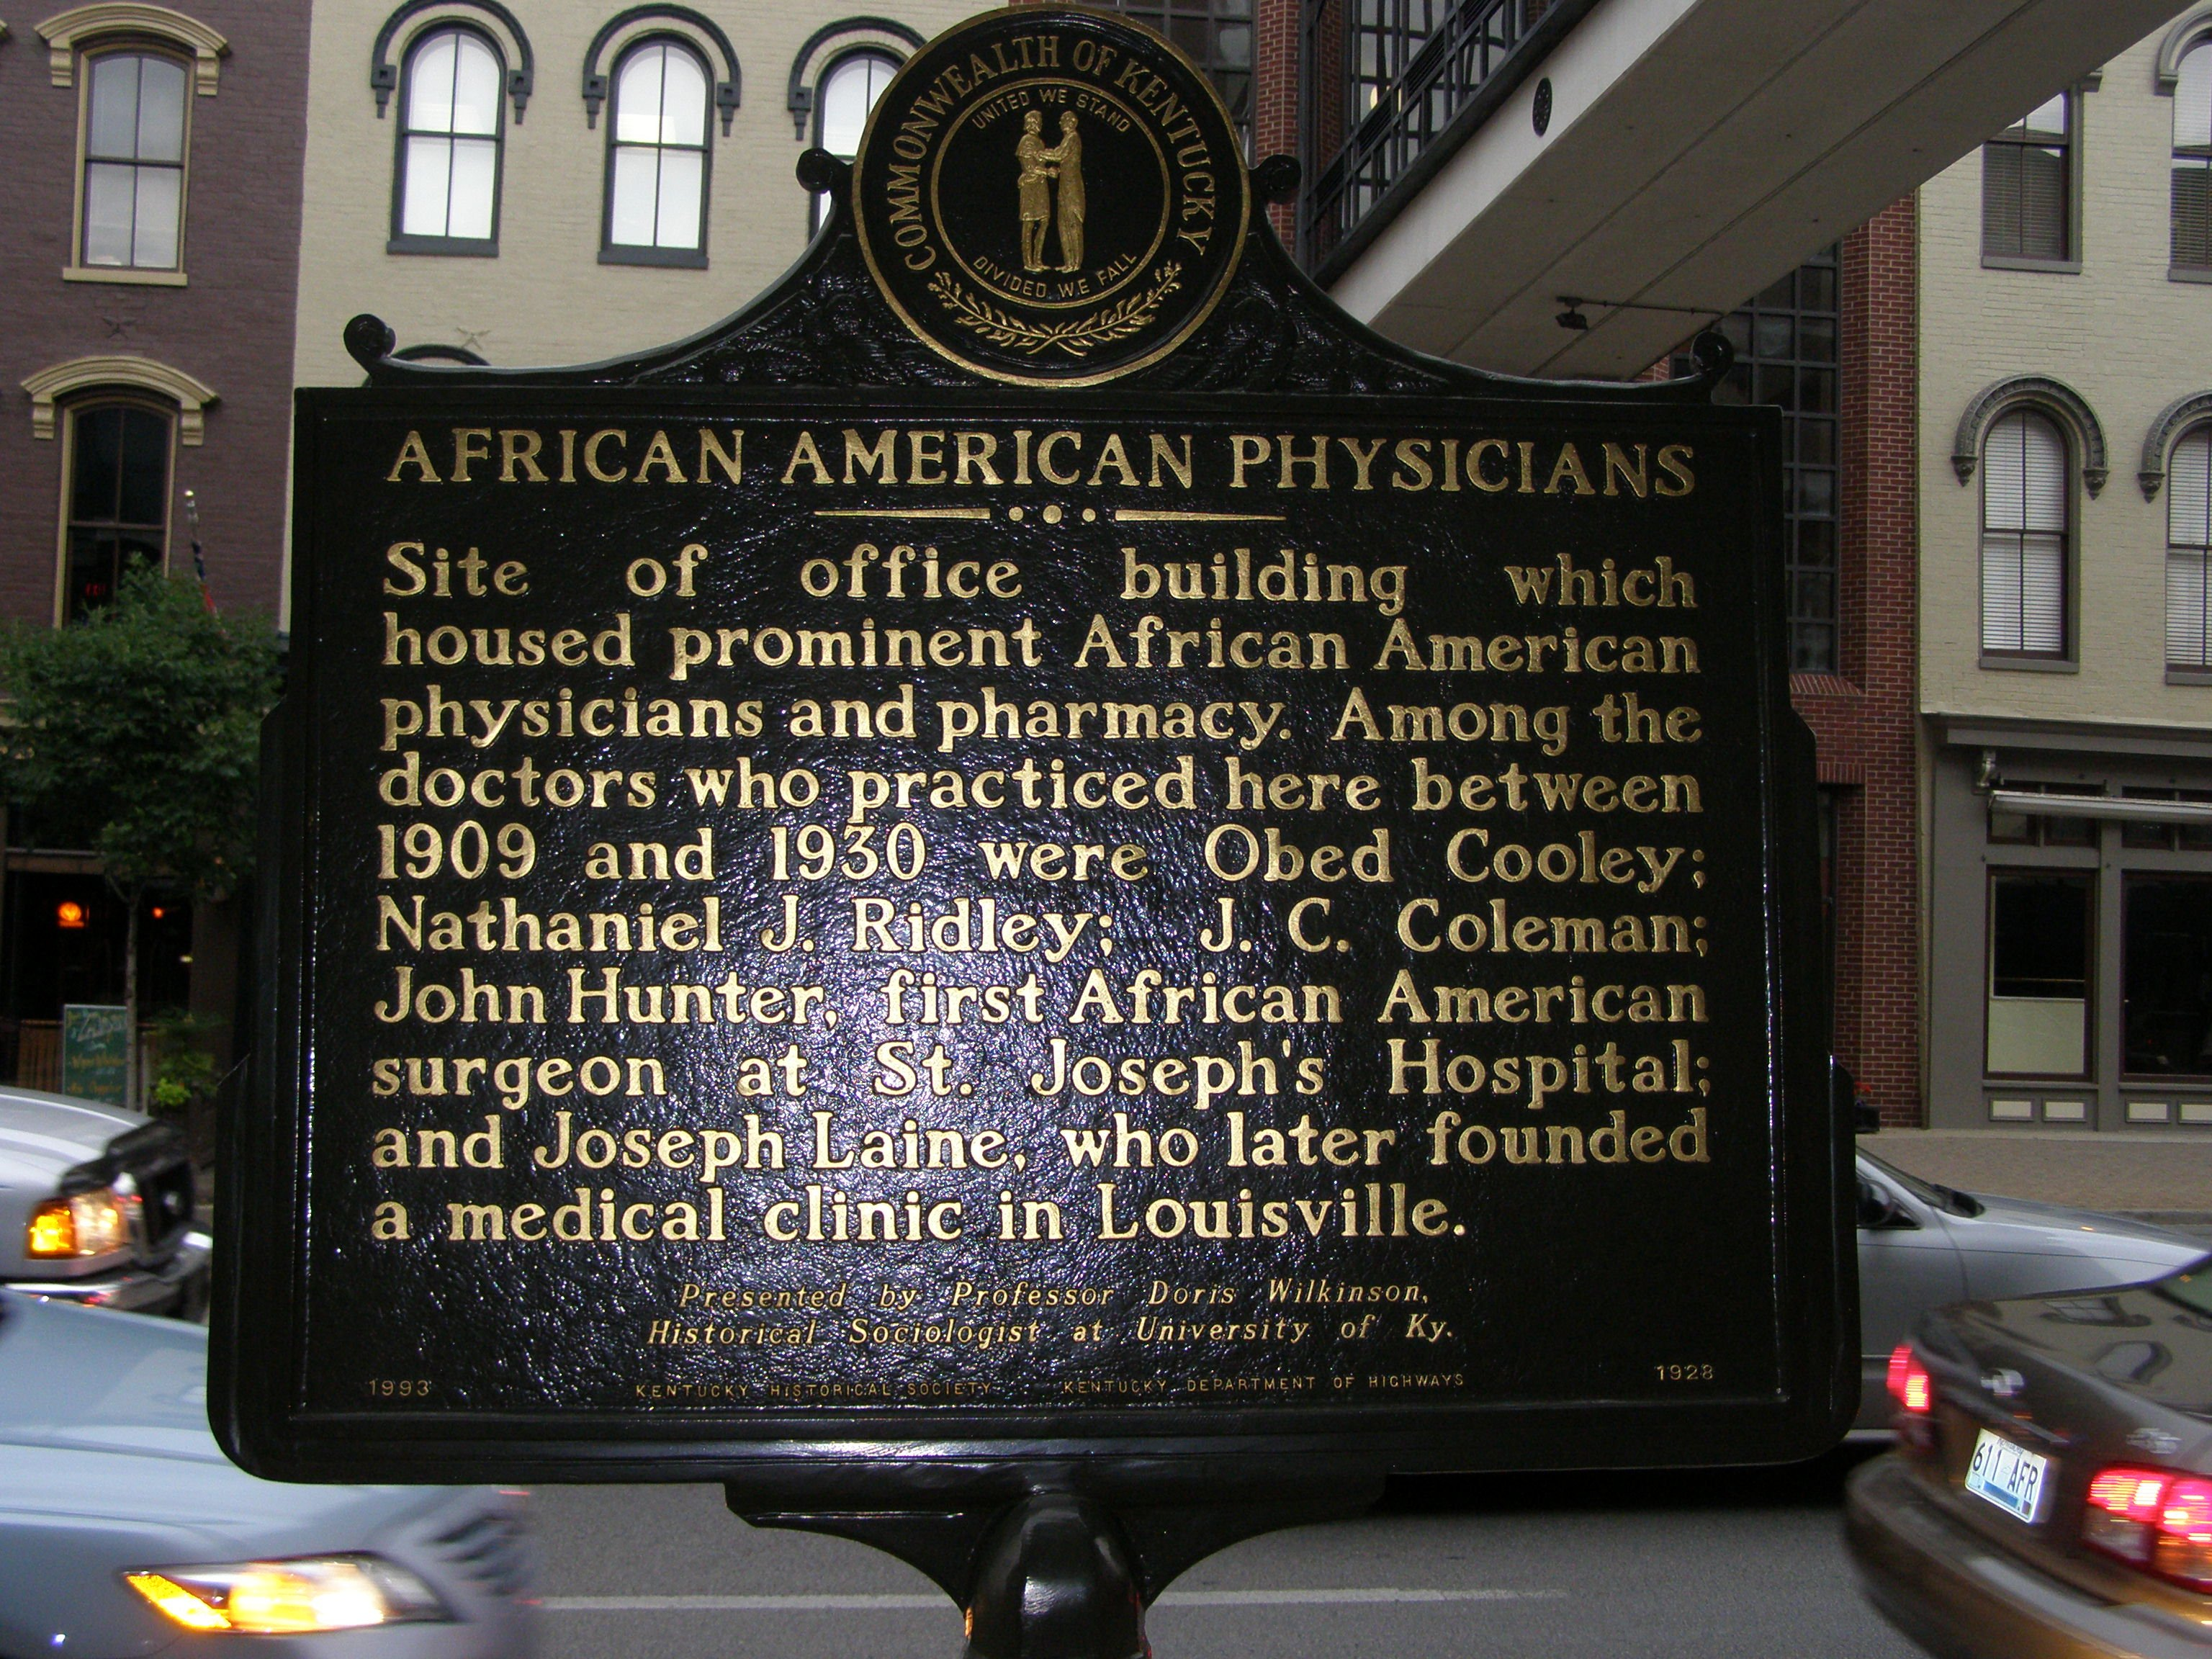 This is the front of the African American Physicians marker. It states that it is the site of the building that housed prominent African-American physicians and pharmacy. This marker provides information about specific doctors.